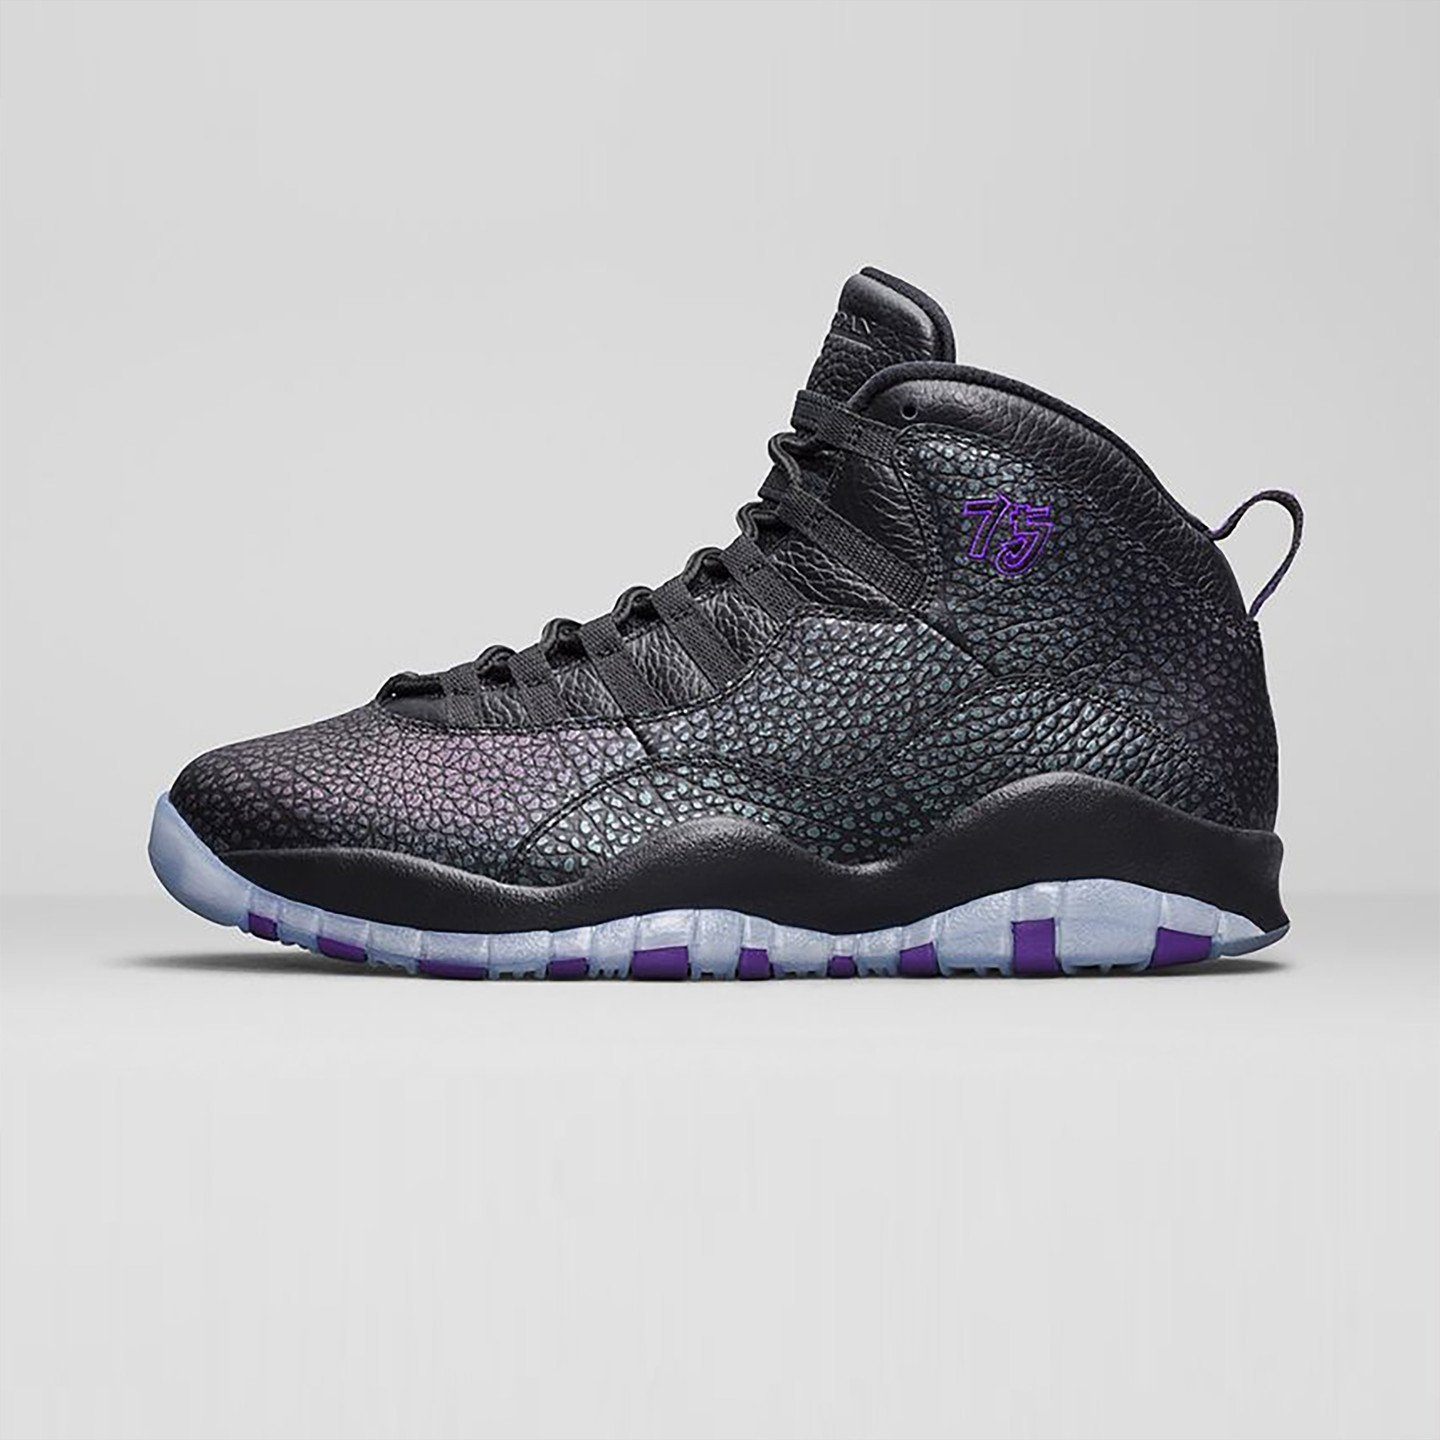 Jordan Air Jordan 10 Retro 'Paris' Black / Fierce Purple 310805-018-46